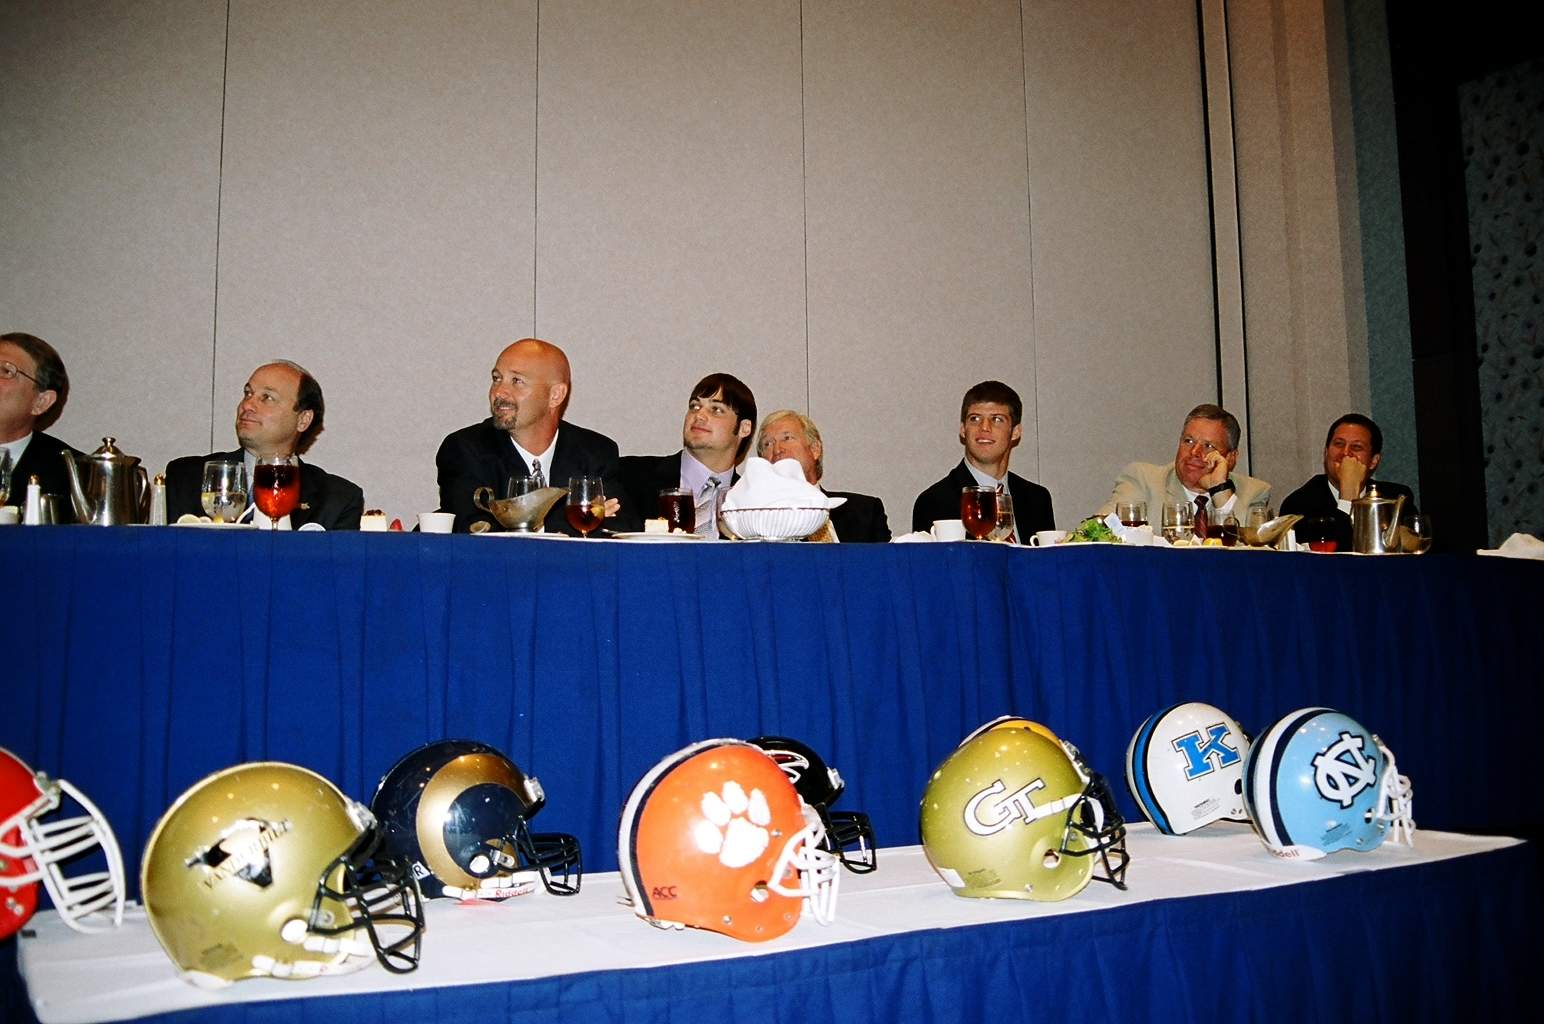 10-18-04 The TCA Dais